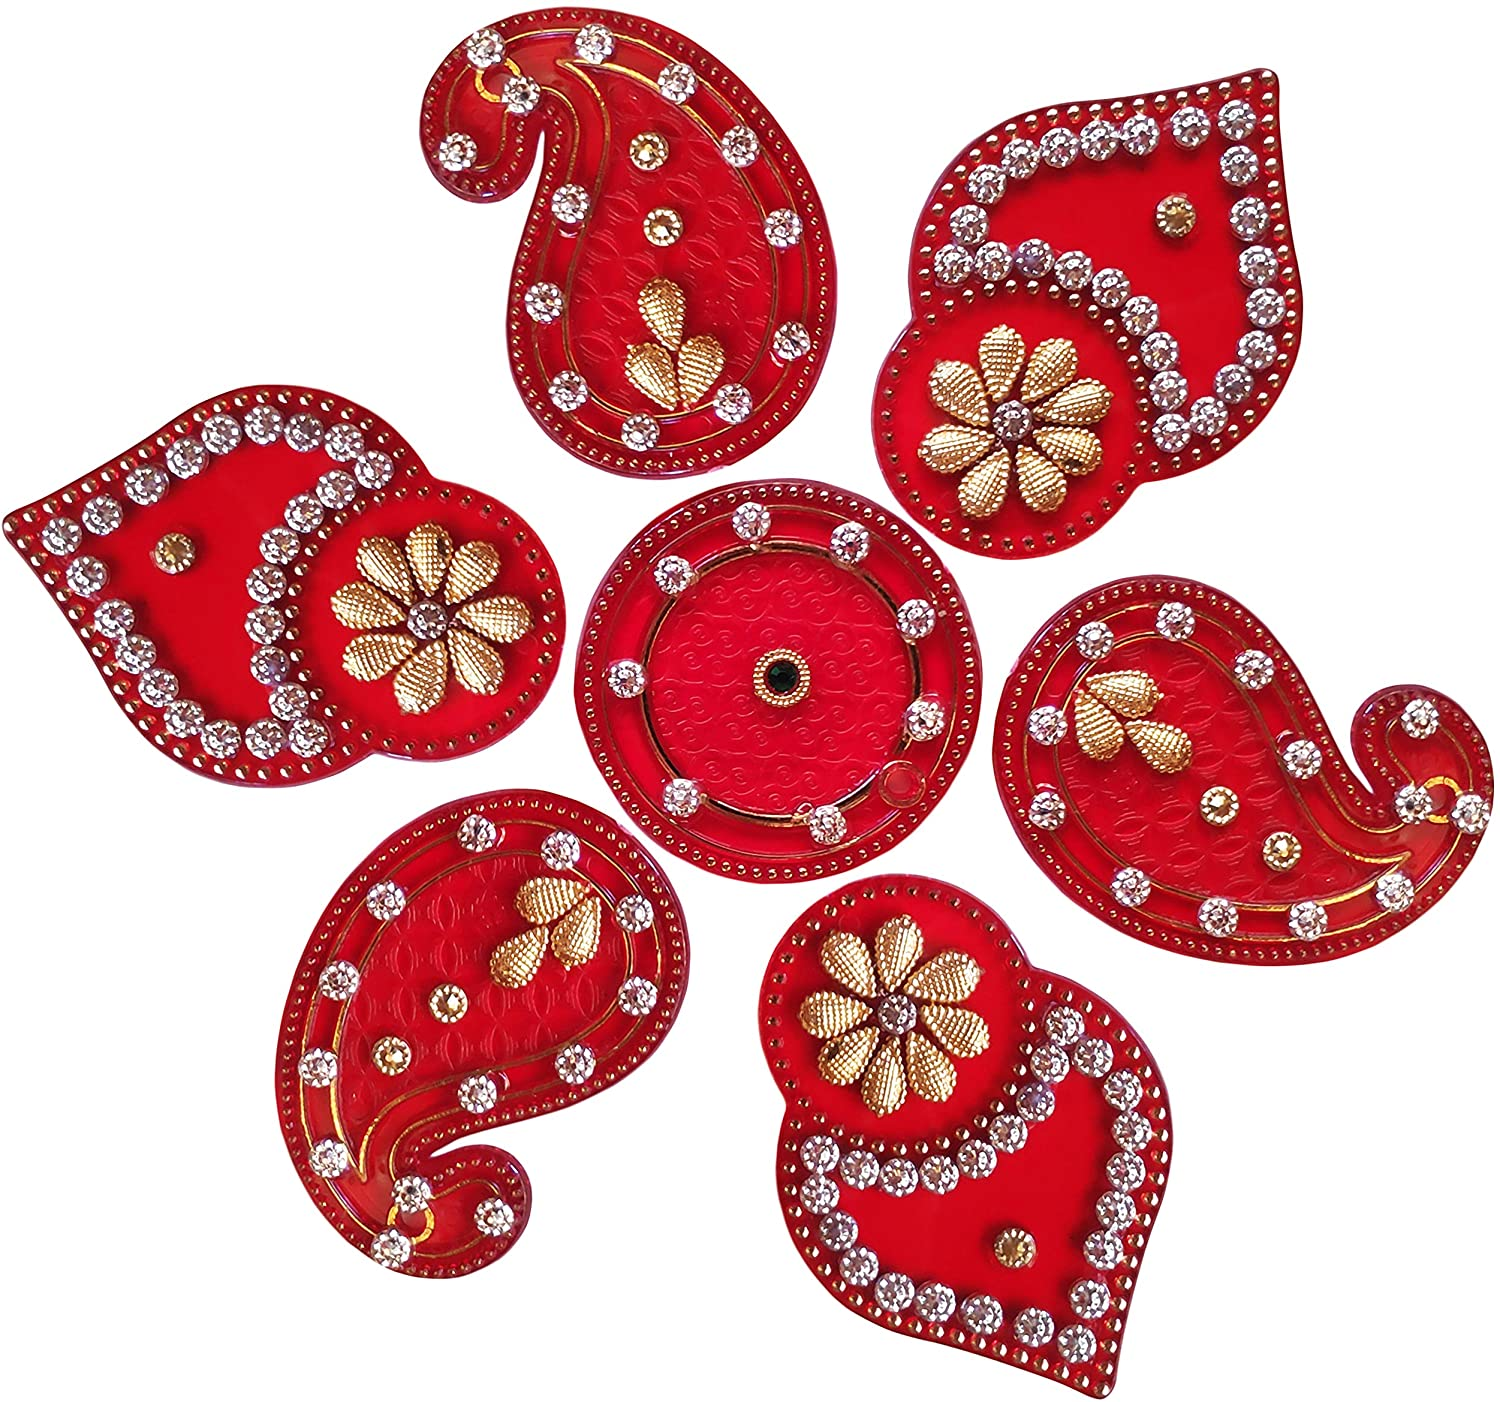 Diwali Acylic Rangoli Floor Decorations Acrylic Yellow Color with Studded Stones and Sequins, Traditional Festive Home Décor